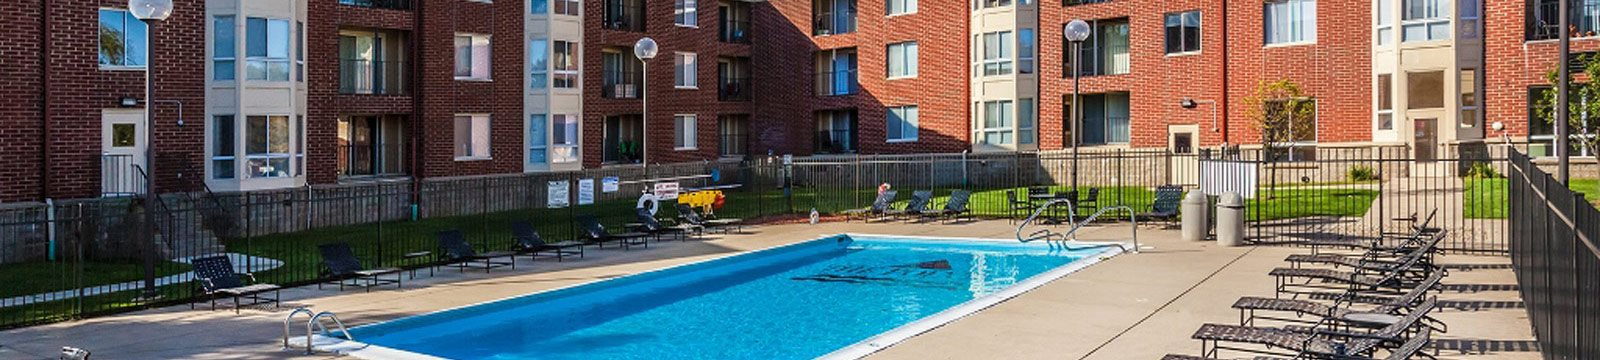 Refreshing Pool and Sundeck  at The Pointe at St. Joseph Apartments, South Bend, IN, 46617